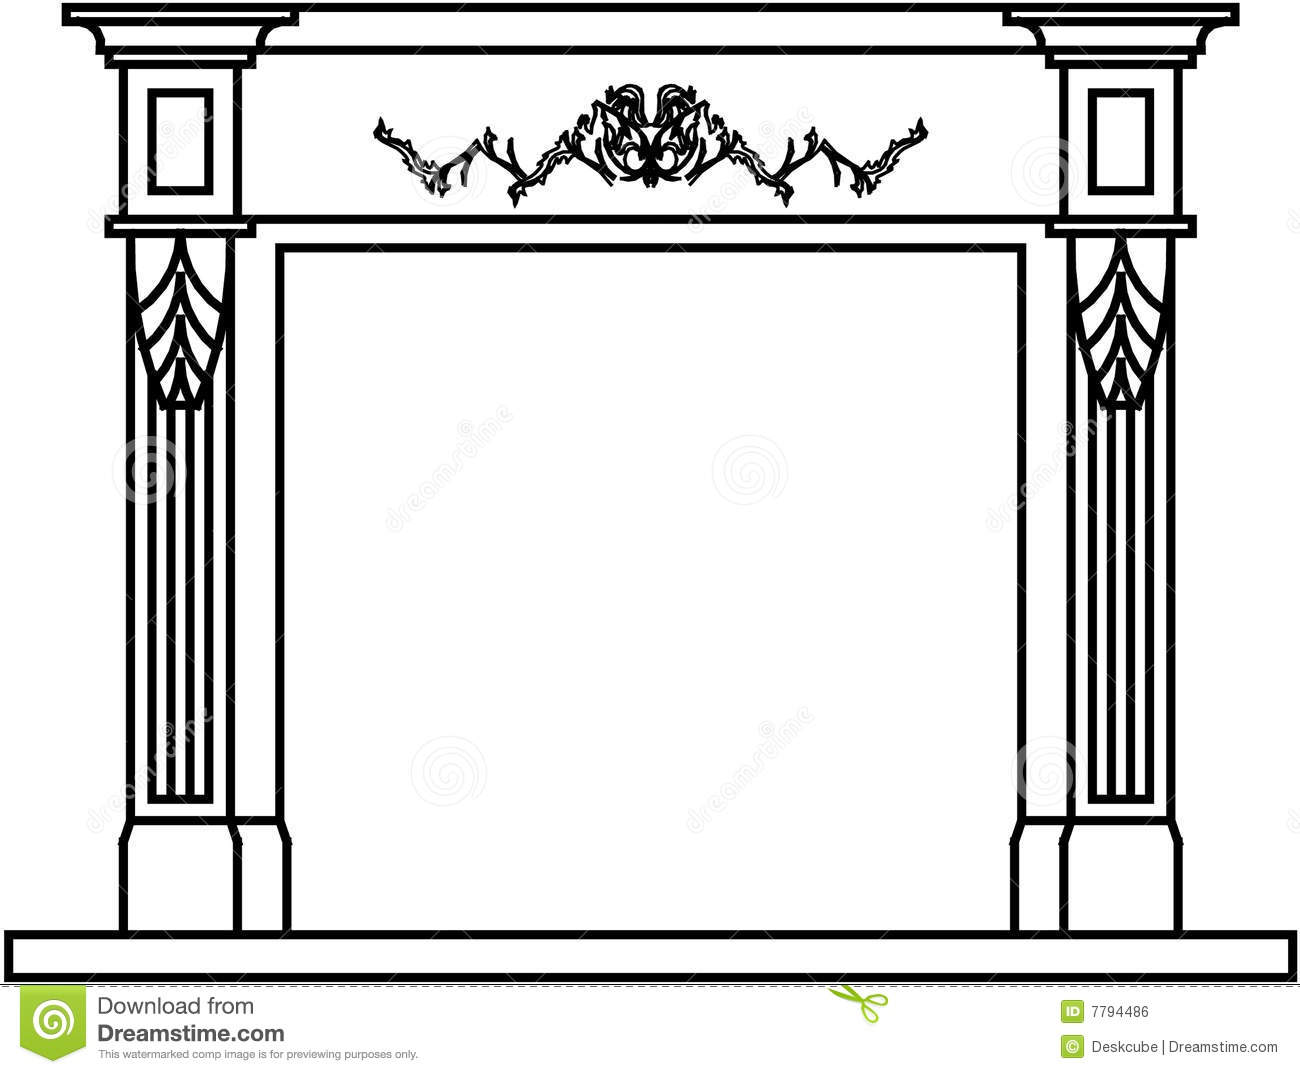 clipart fireplace fire - photo #45